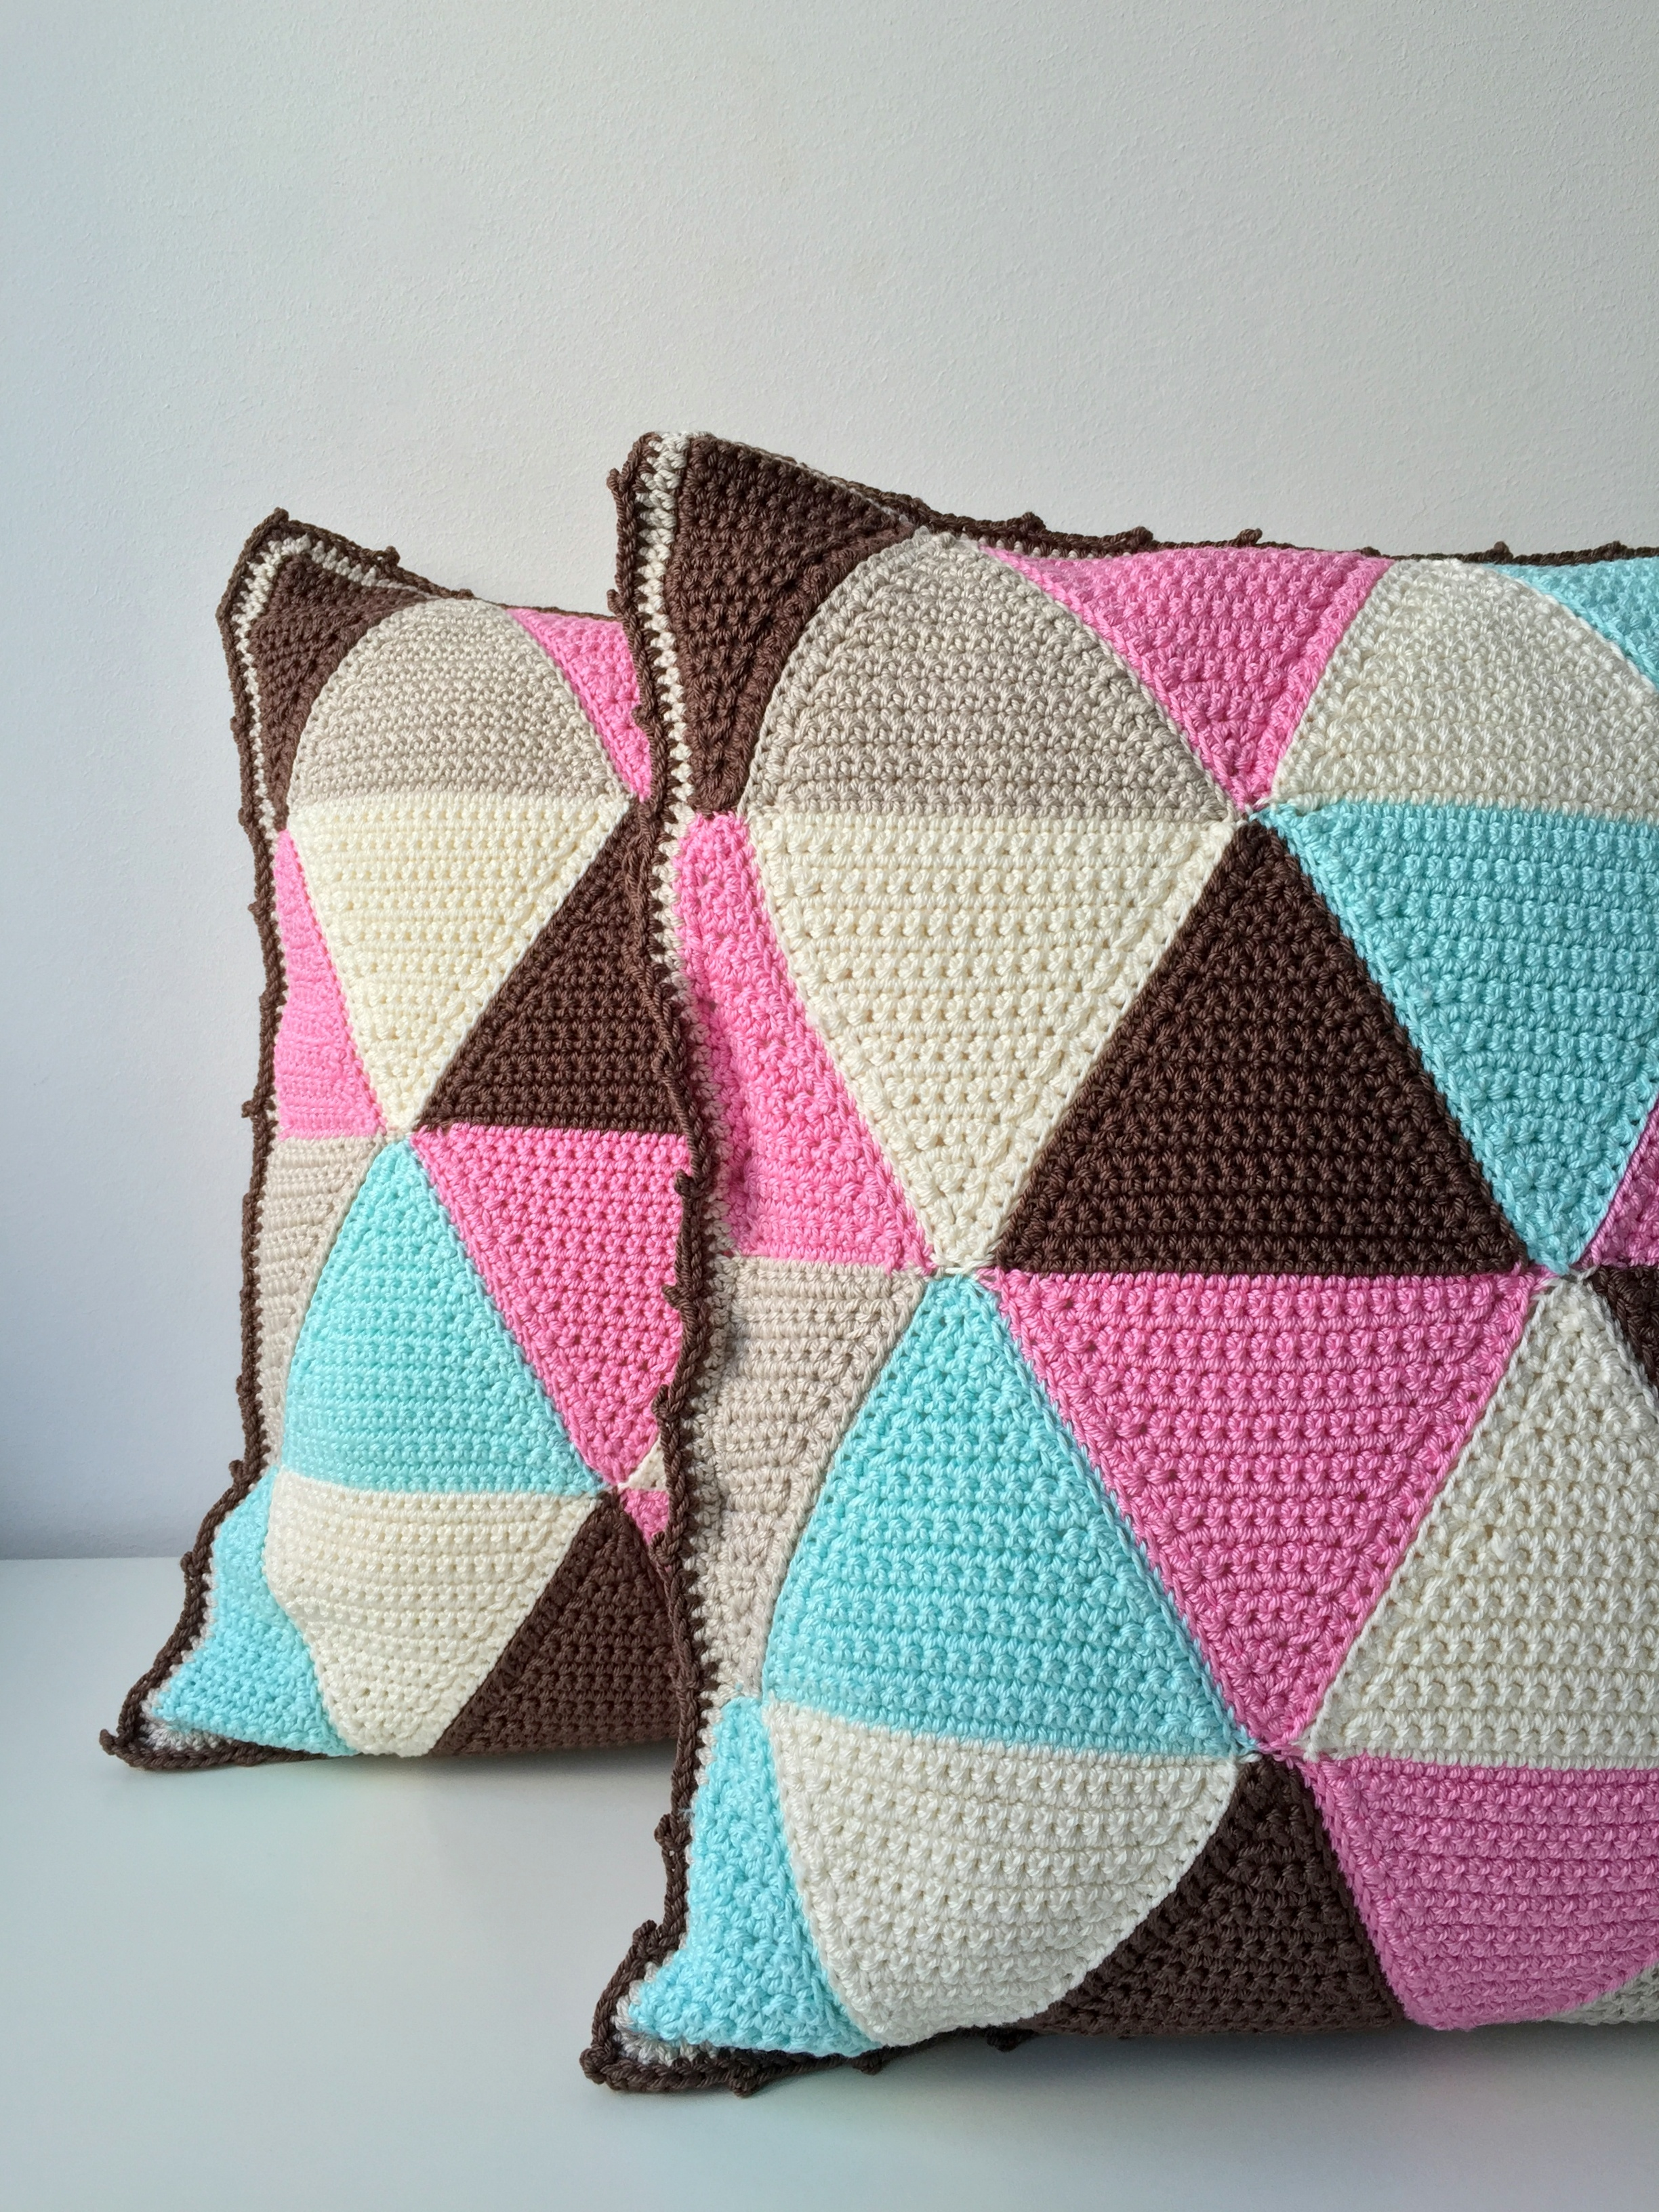 maRRose - CCC - The Gelato Gemini Triangle Cushions-30